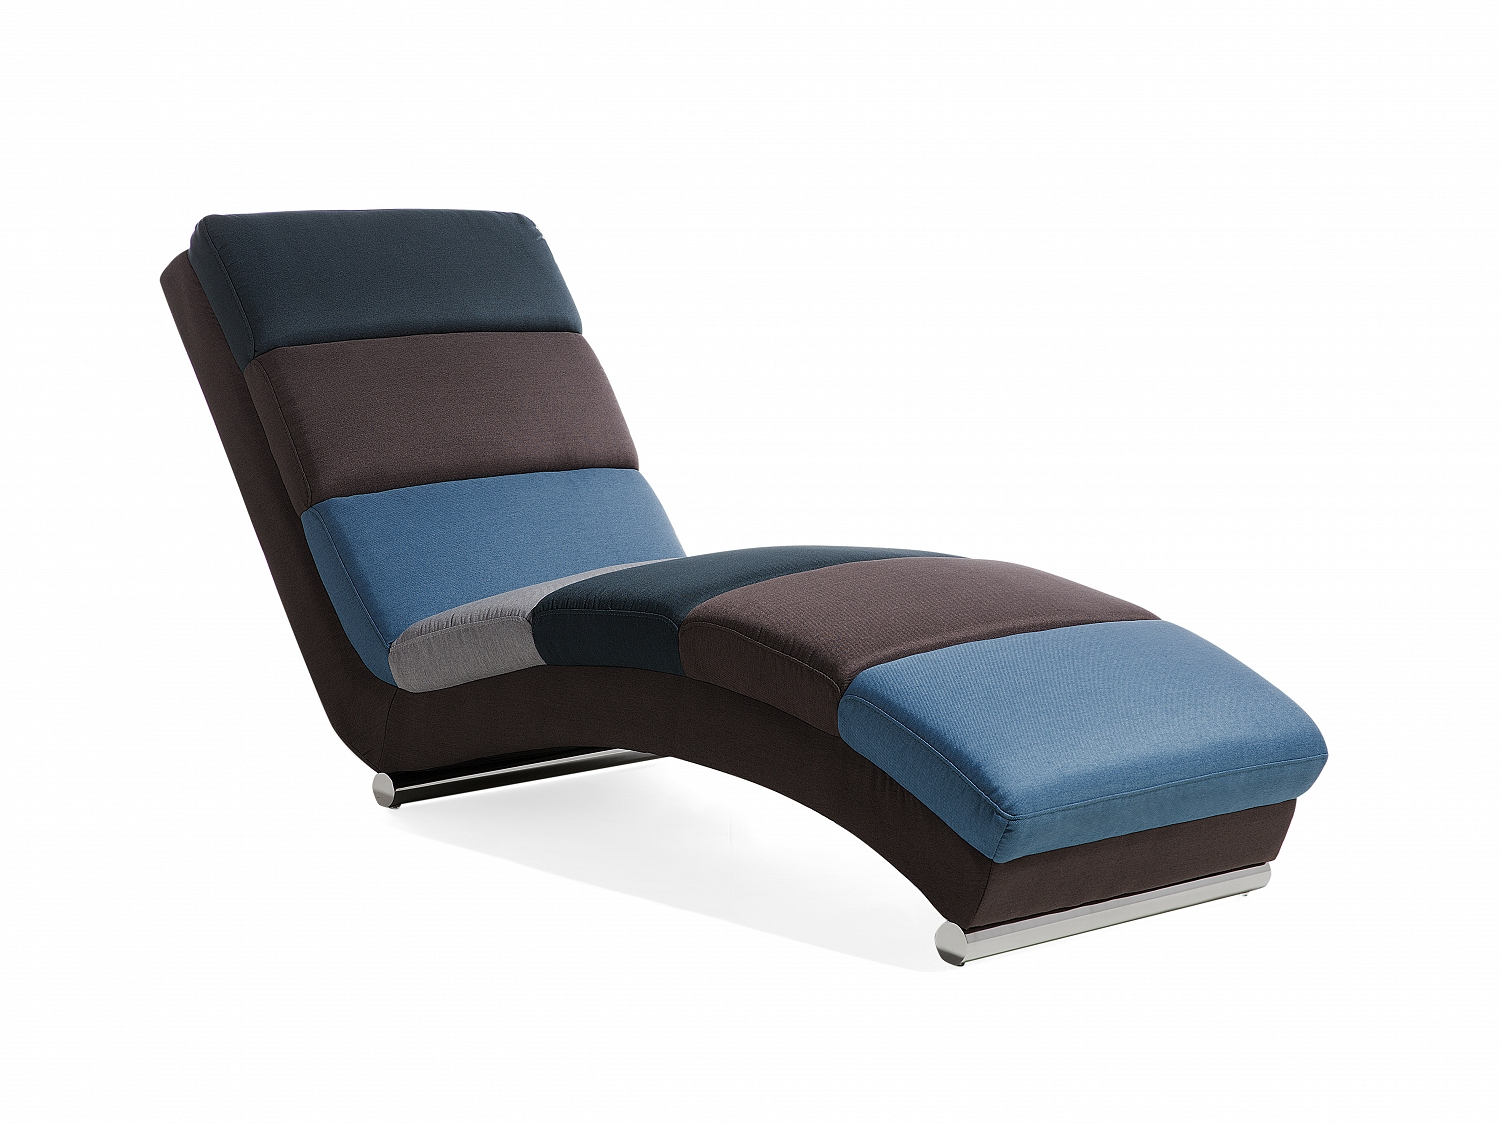 Chaise longue fabric sofa floor lounger lounge chair day for Chaise longue sofa bed ebay